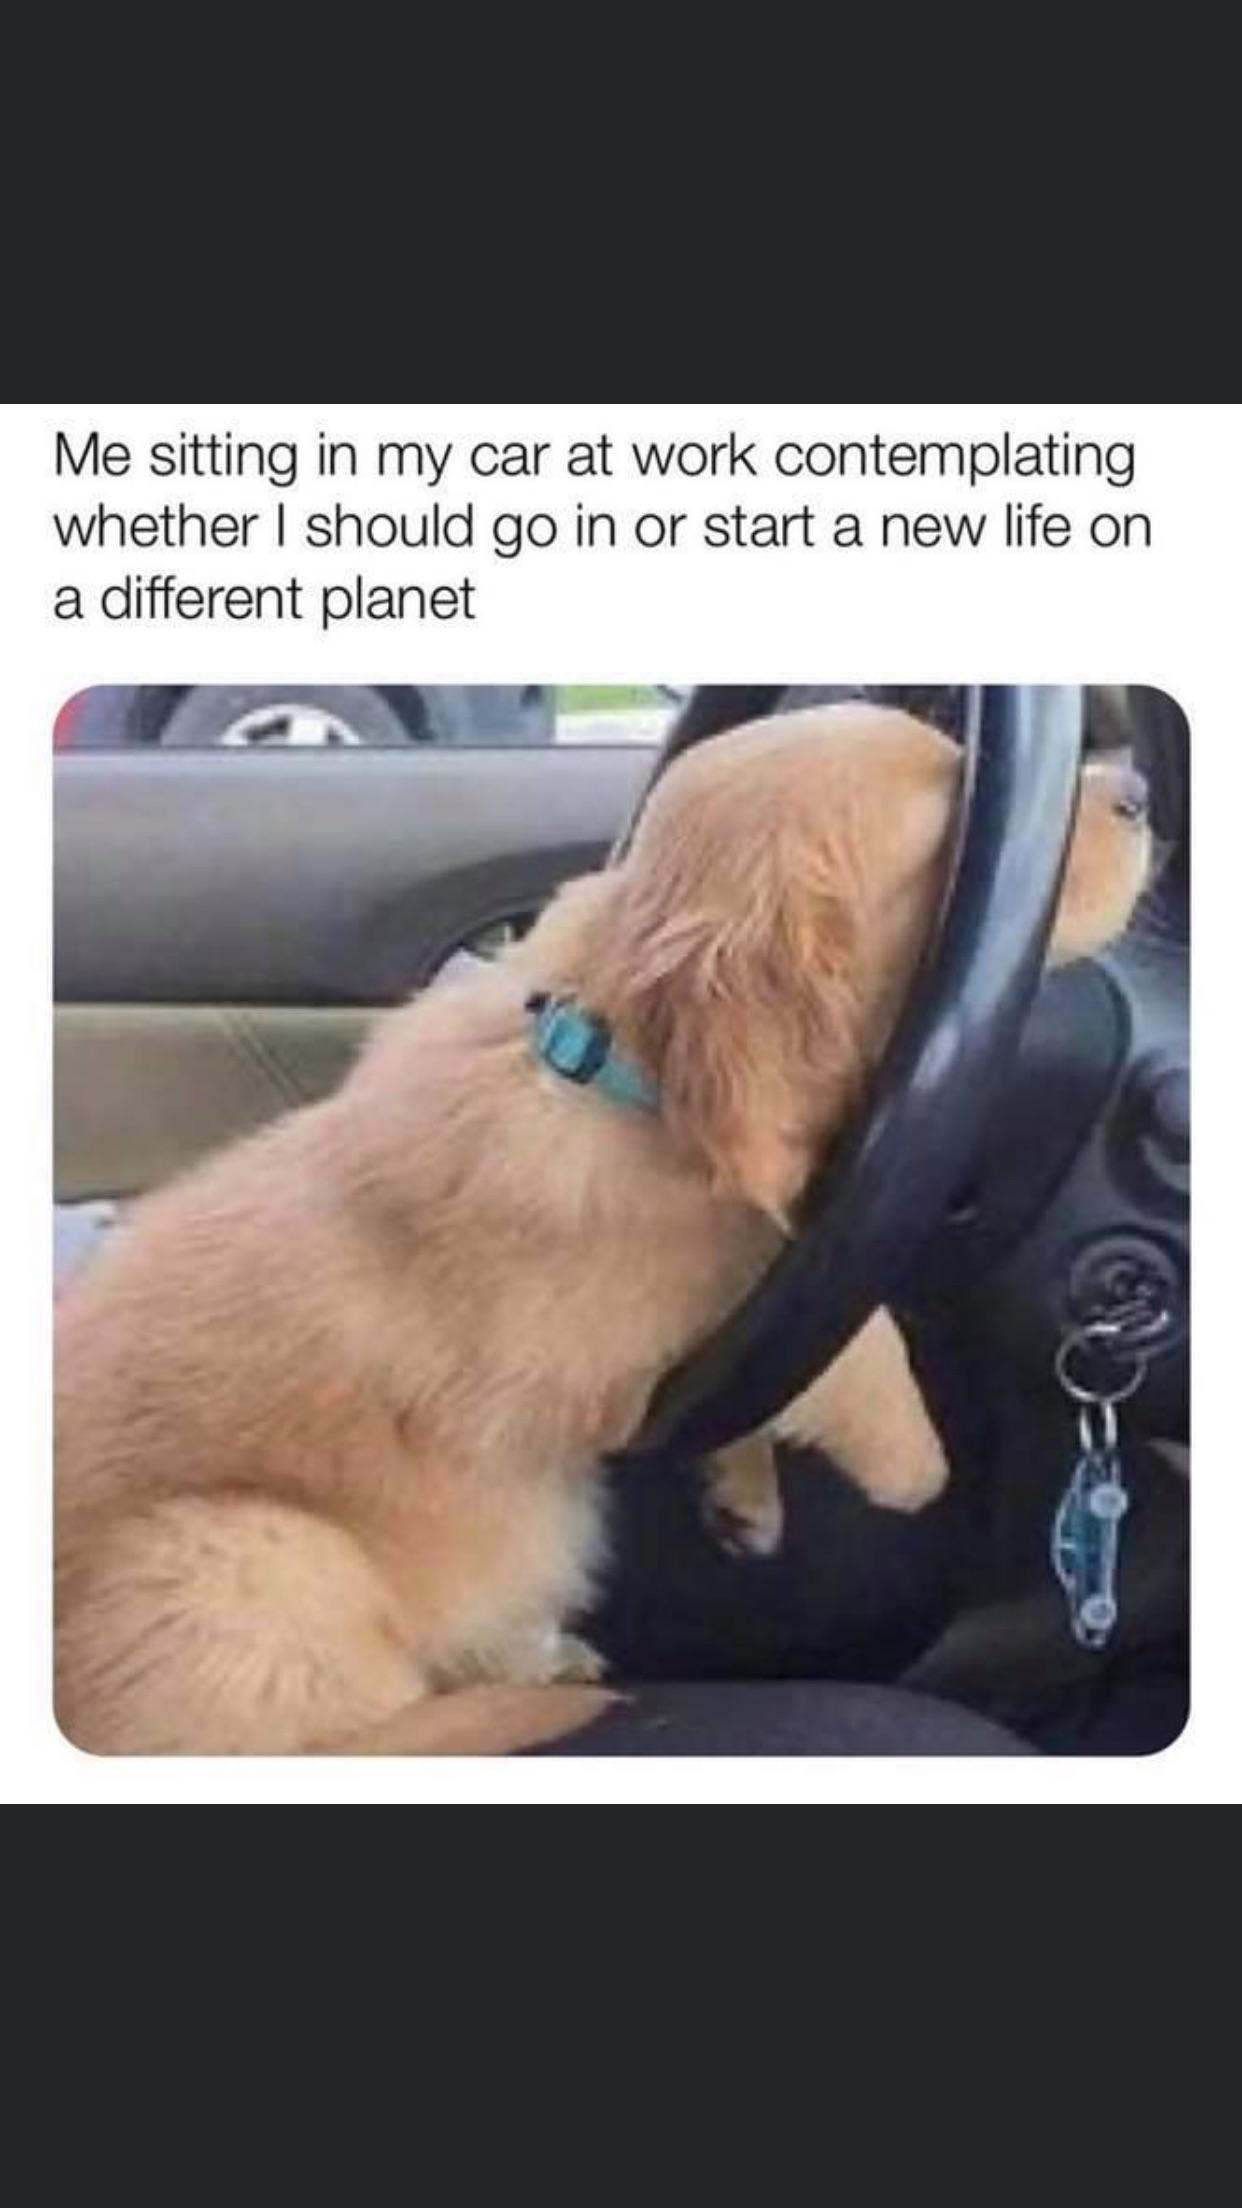 """lVle sitting in my car at work contemplating whether I should go in or start a new life on a different planet L l]: .;':'~3._1 """"""""' ' https://inspirational.ly"""